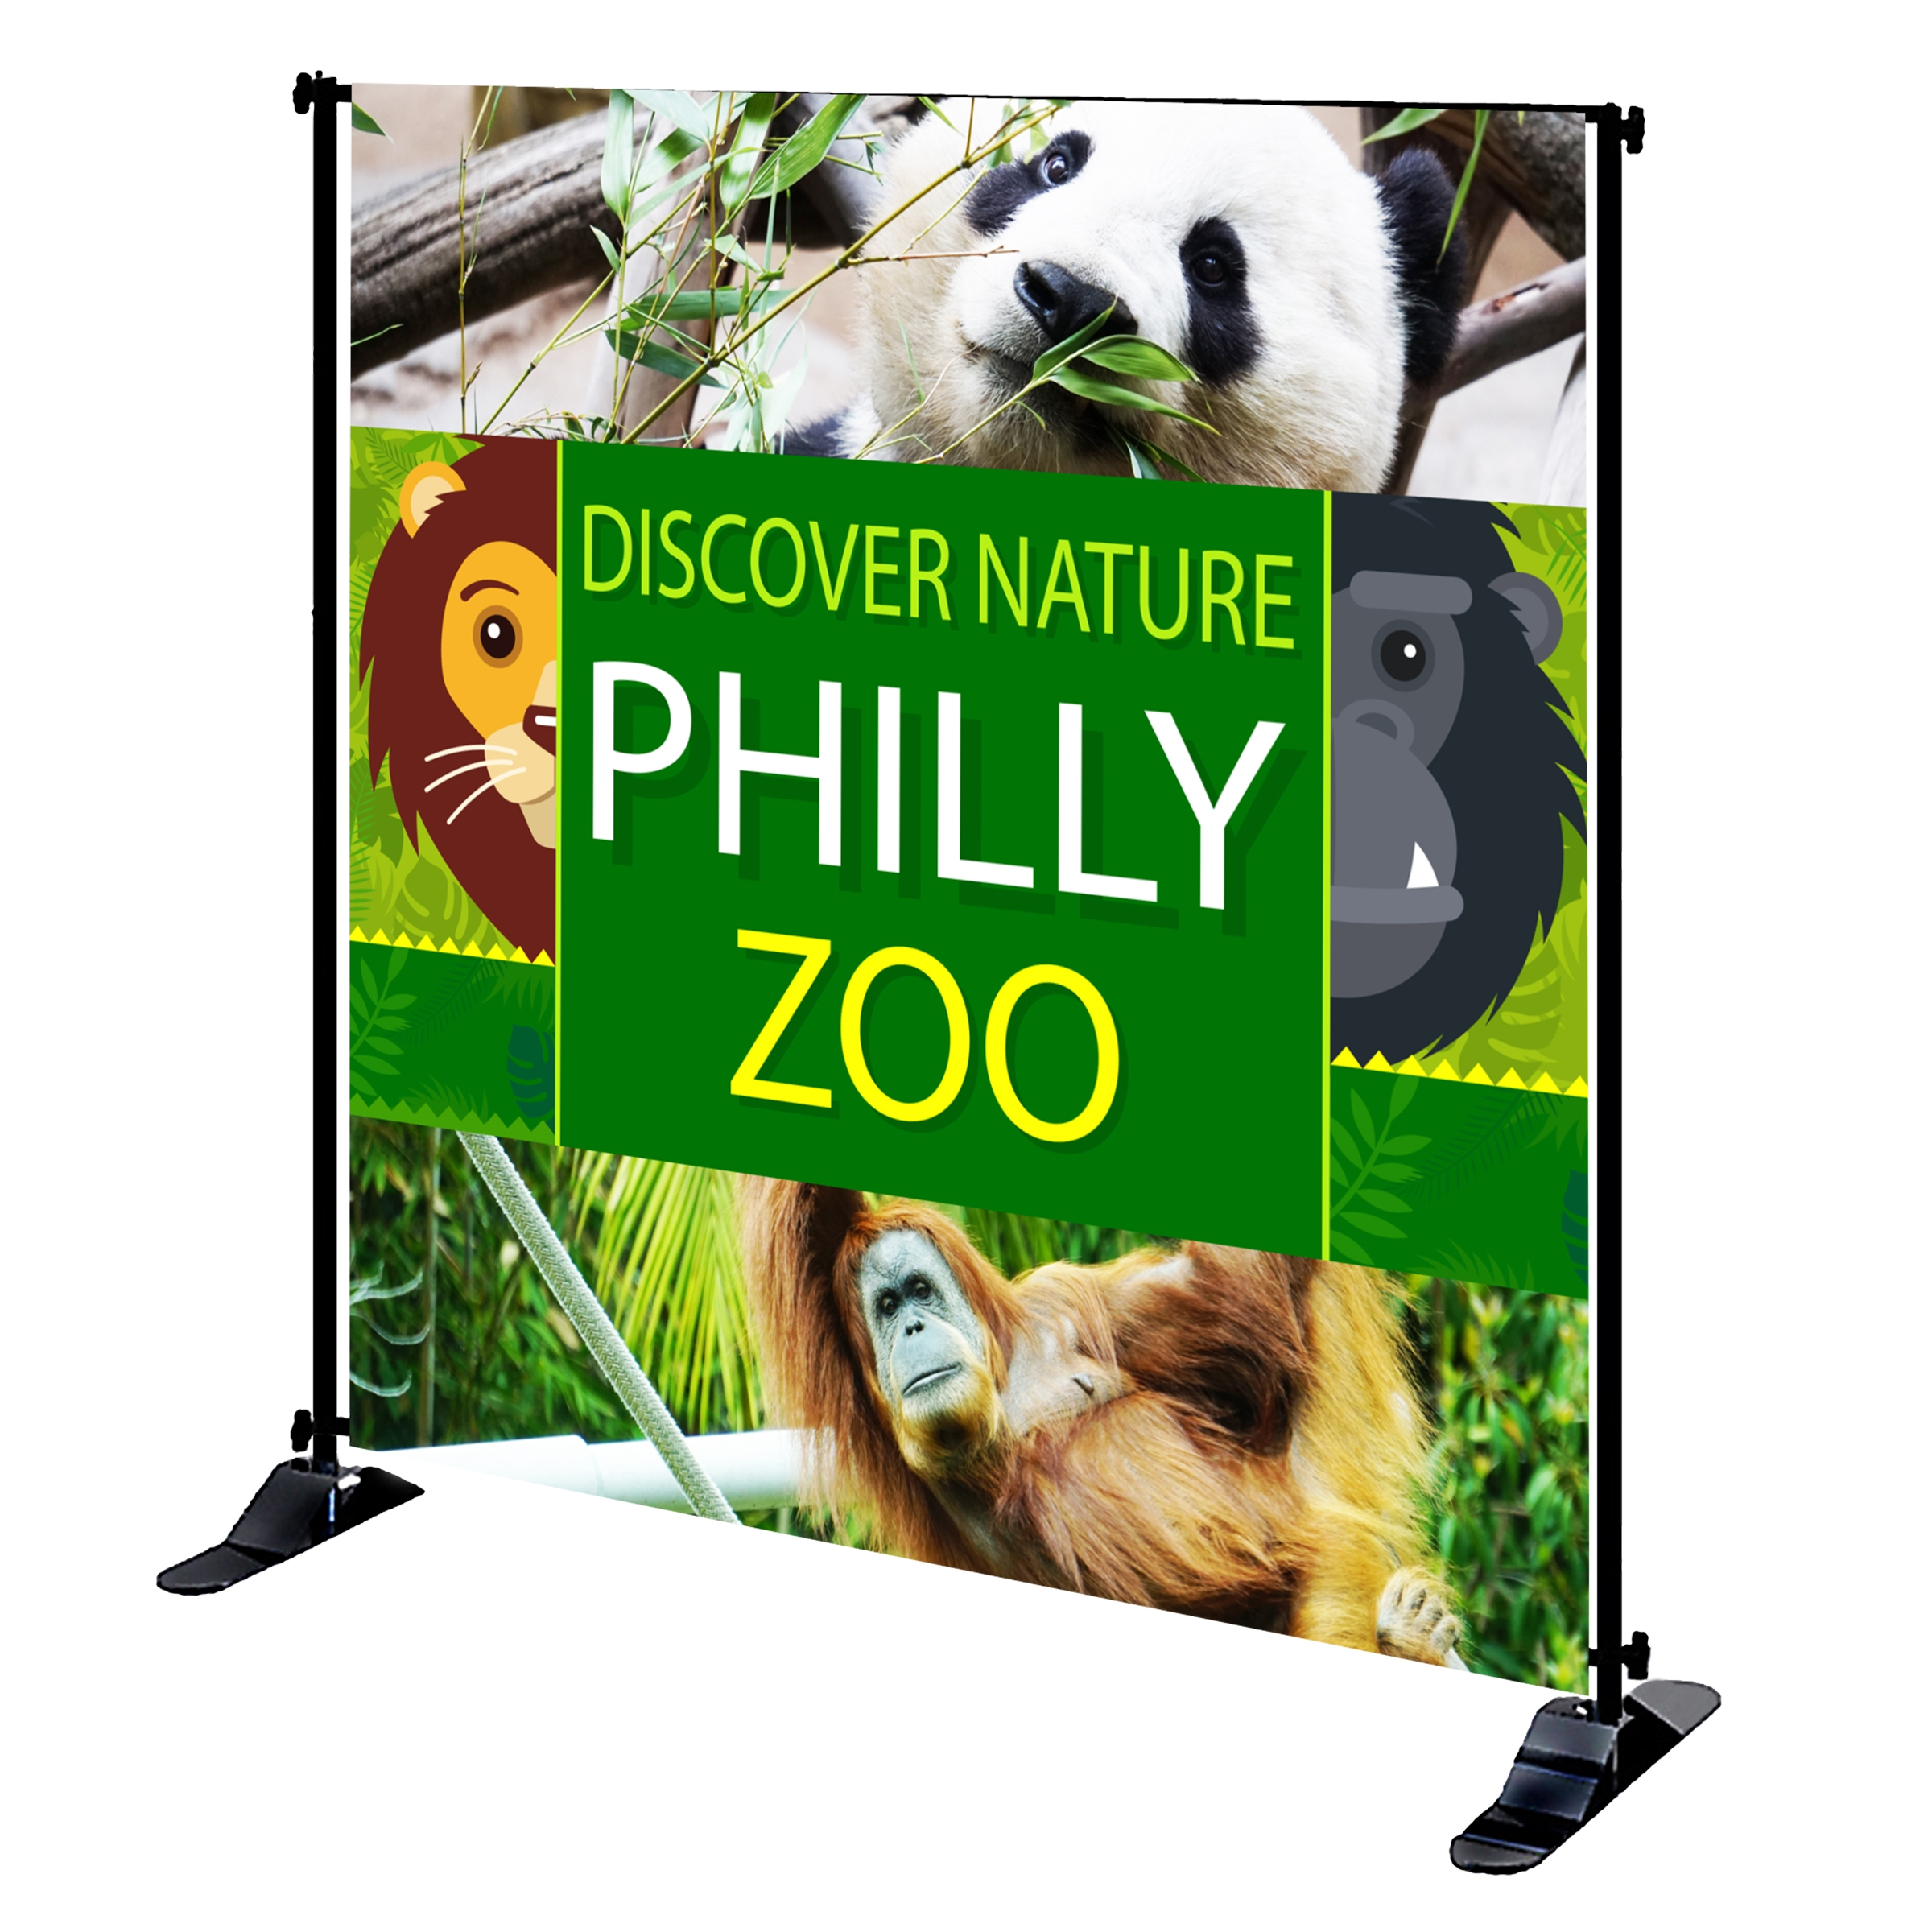 Mighty Banner Display - 8' x 8' Large Tube Frame and Fabric Graphic Kit